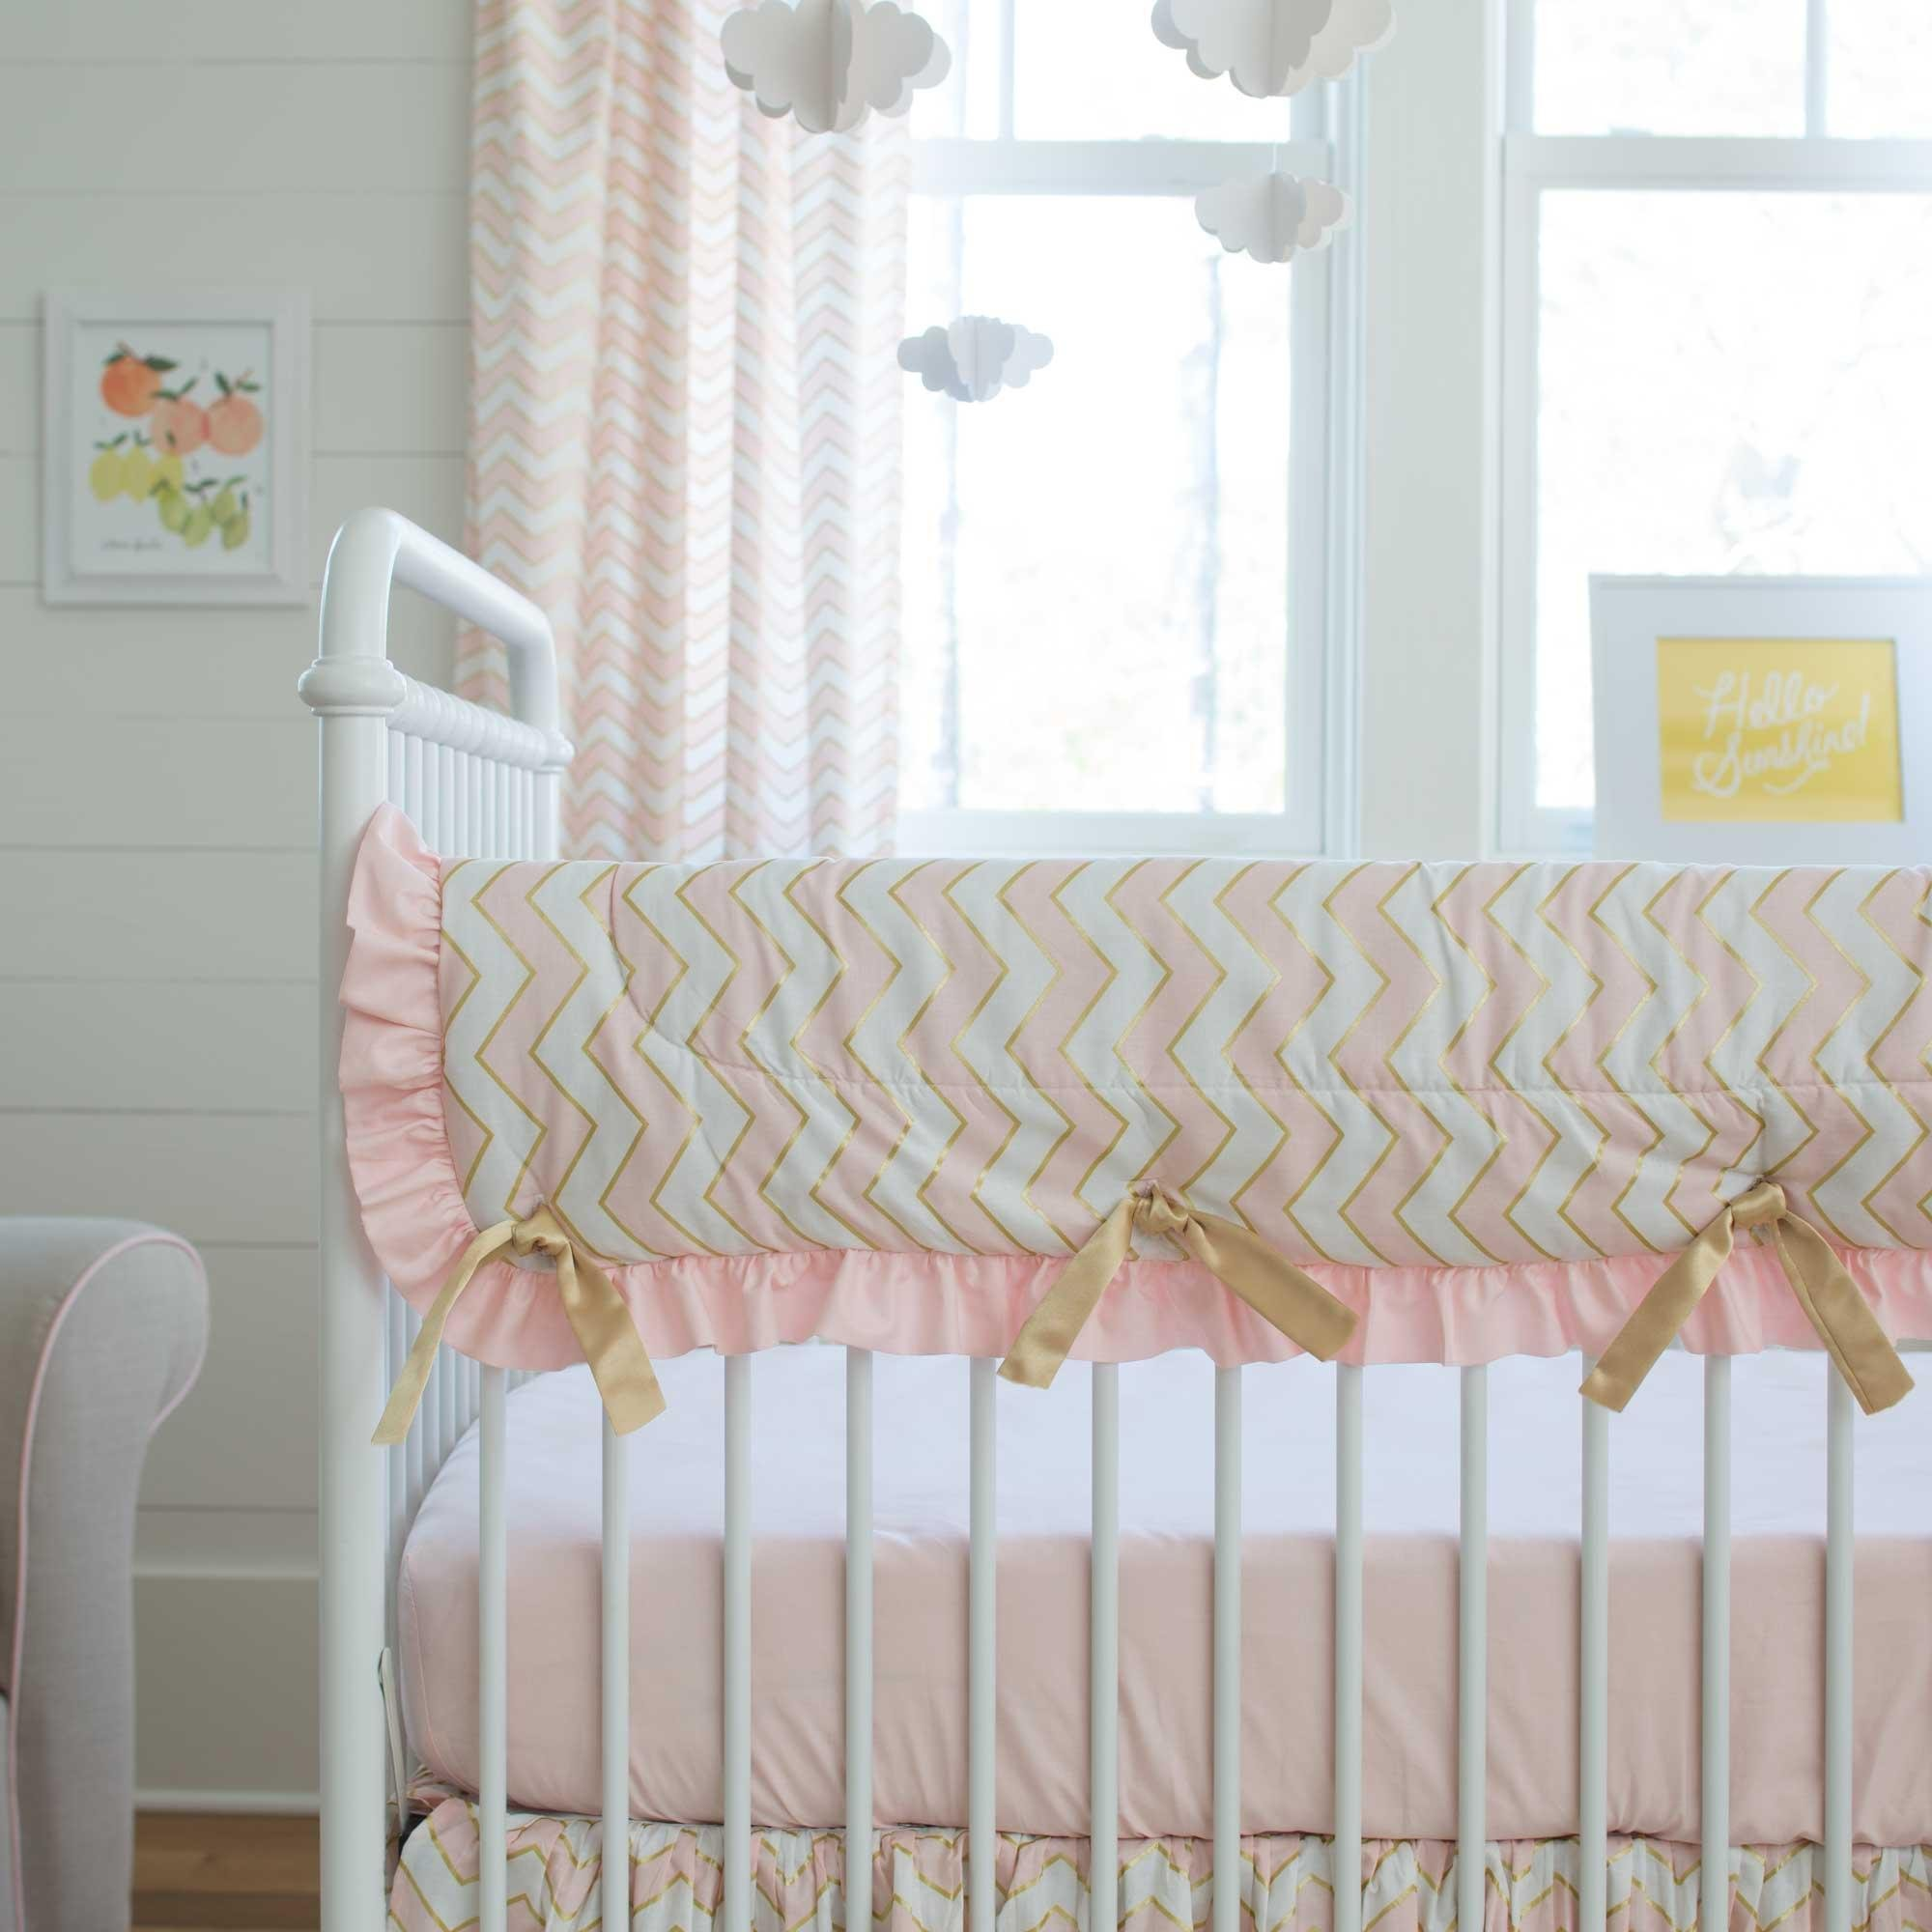 Carousel Designs Pale Pink and Gold Chevron Crib Rail Cover by Carousel Designs